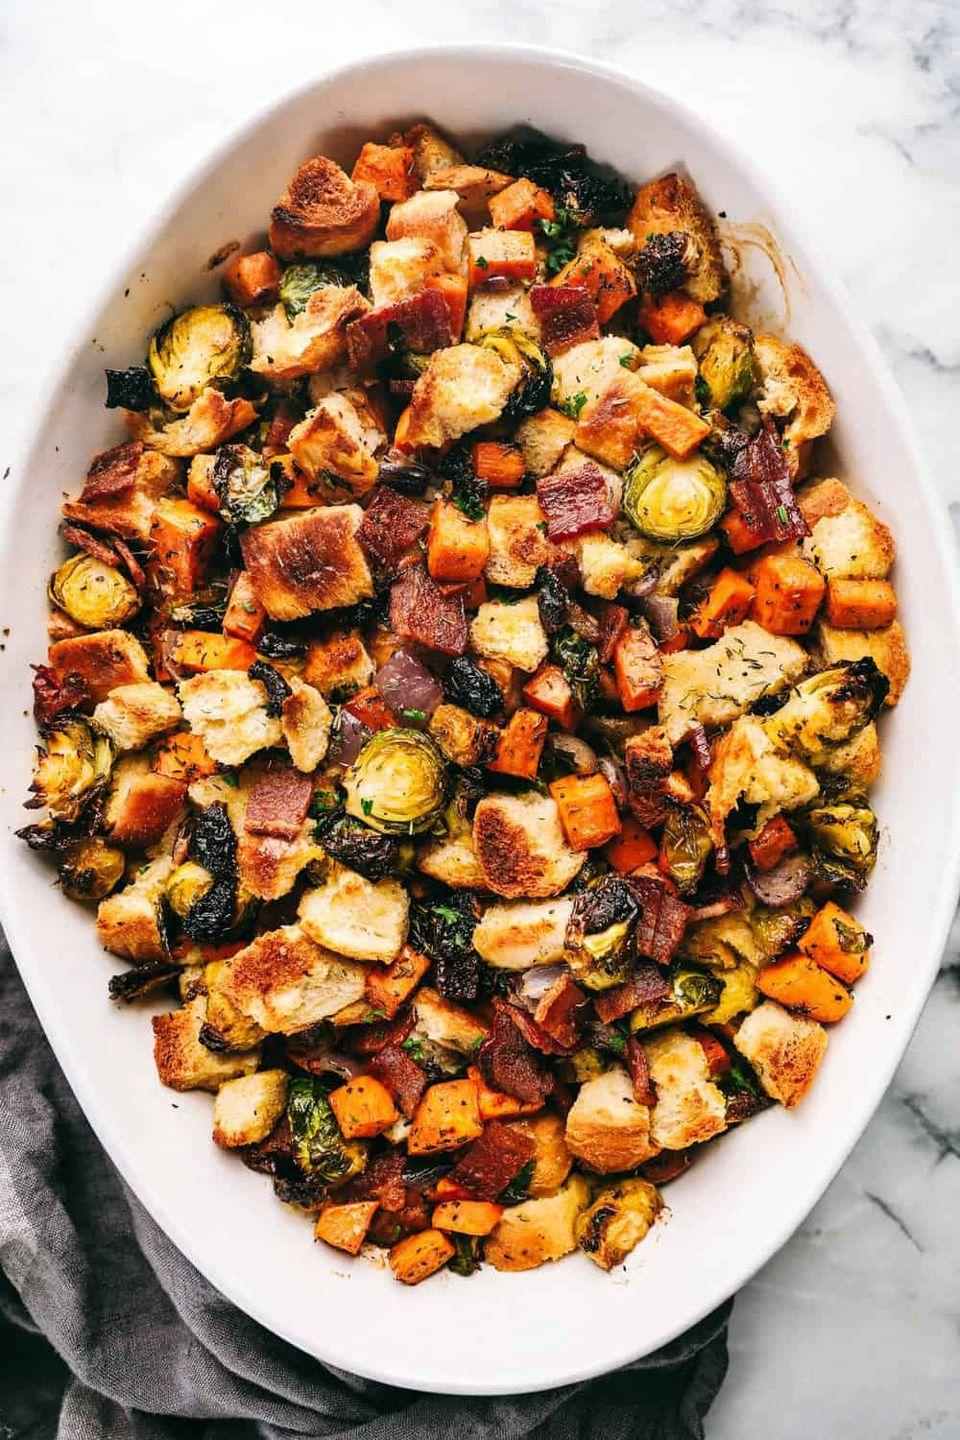 "<p>Loaded with <a href=""https://www.countryliving.com/food-drinks/g877/sweet-potato-recipes-1009/"" rel=""nofollow noopener"" target=""_blank"" data-ylk=""slk:sweet potato"" class=""link rapid-noclick-resp"">sweet potato</a>, <a href=""https://www.countryliving.com/food-drinks/g4685/acorn-squash/"" rel=""nofollow noopener"" target=""_blank"" data-ylk=""slk:acorn squash"" class=""link rapid-noclick-resp"">acorn squash</a>, and bacon, this <a href=""https://www.countryliving.com/food-drinks/g908/stuffing-recipes/"" rel=""nofollow noopener"" target=""_blank"" data-ylk=""slk:stuffing recipe"" class=""link rapid-noclick-resp"">stuffing recipe</a> is ultra hearty. You'll never consider making a boxed version again after trying this.</p><p><strong>Get the recipe at <a href=""https://therecipecritic.com/roasted-autumn-vegetable-stuffing/"" rel=""nofollow noopener"" target=""_blank"" data-ylk=""slk:The Recipe Critic"" class=""link rapid-noclick-resp"">The Recipe Critic</a>.</strong> </p>"